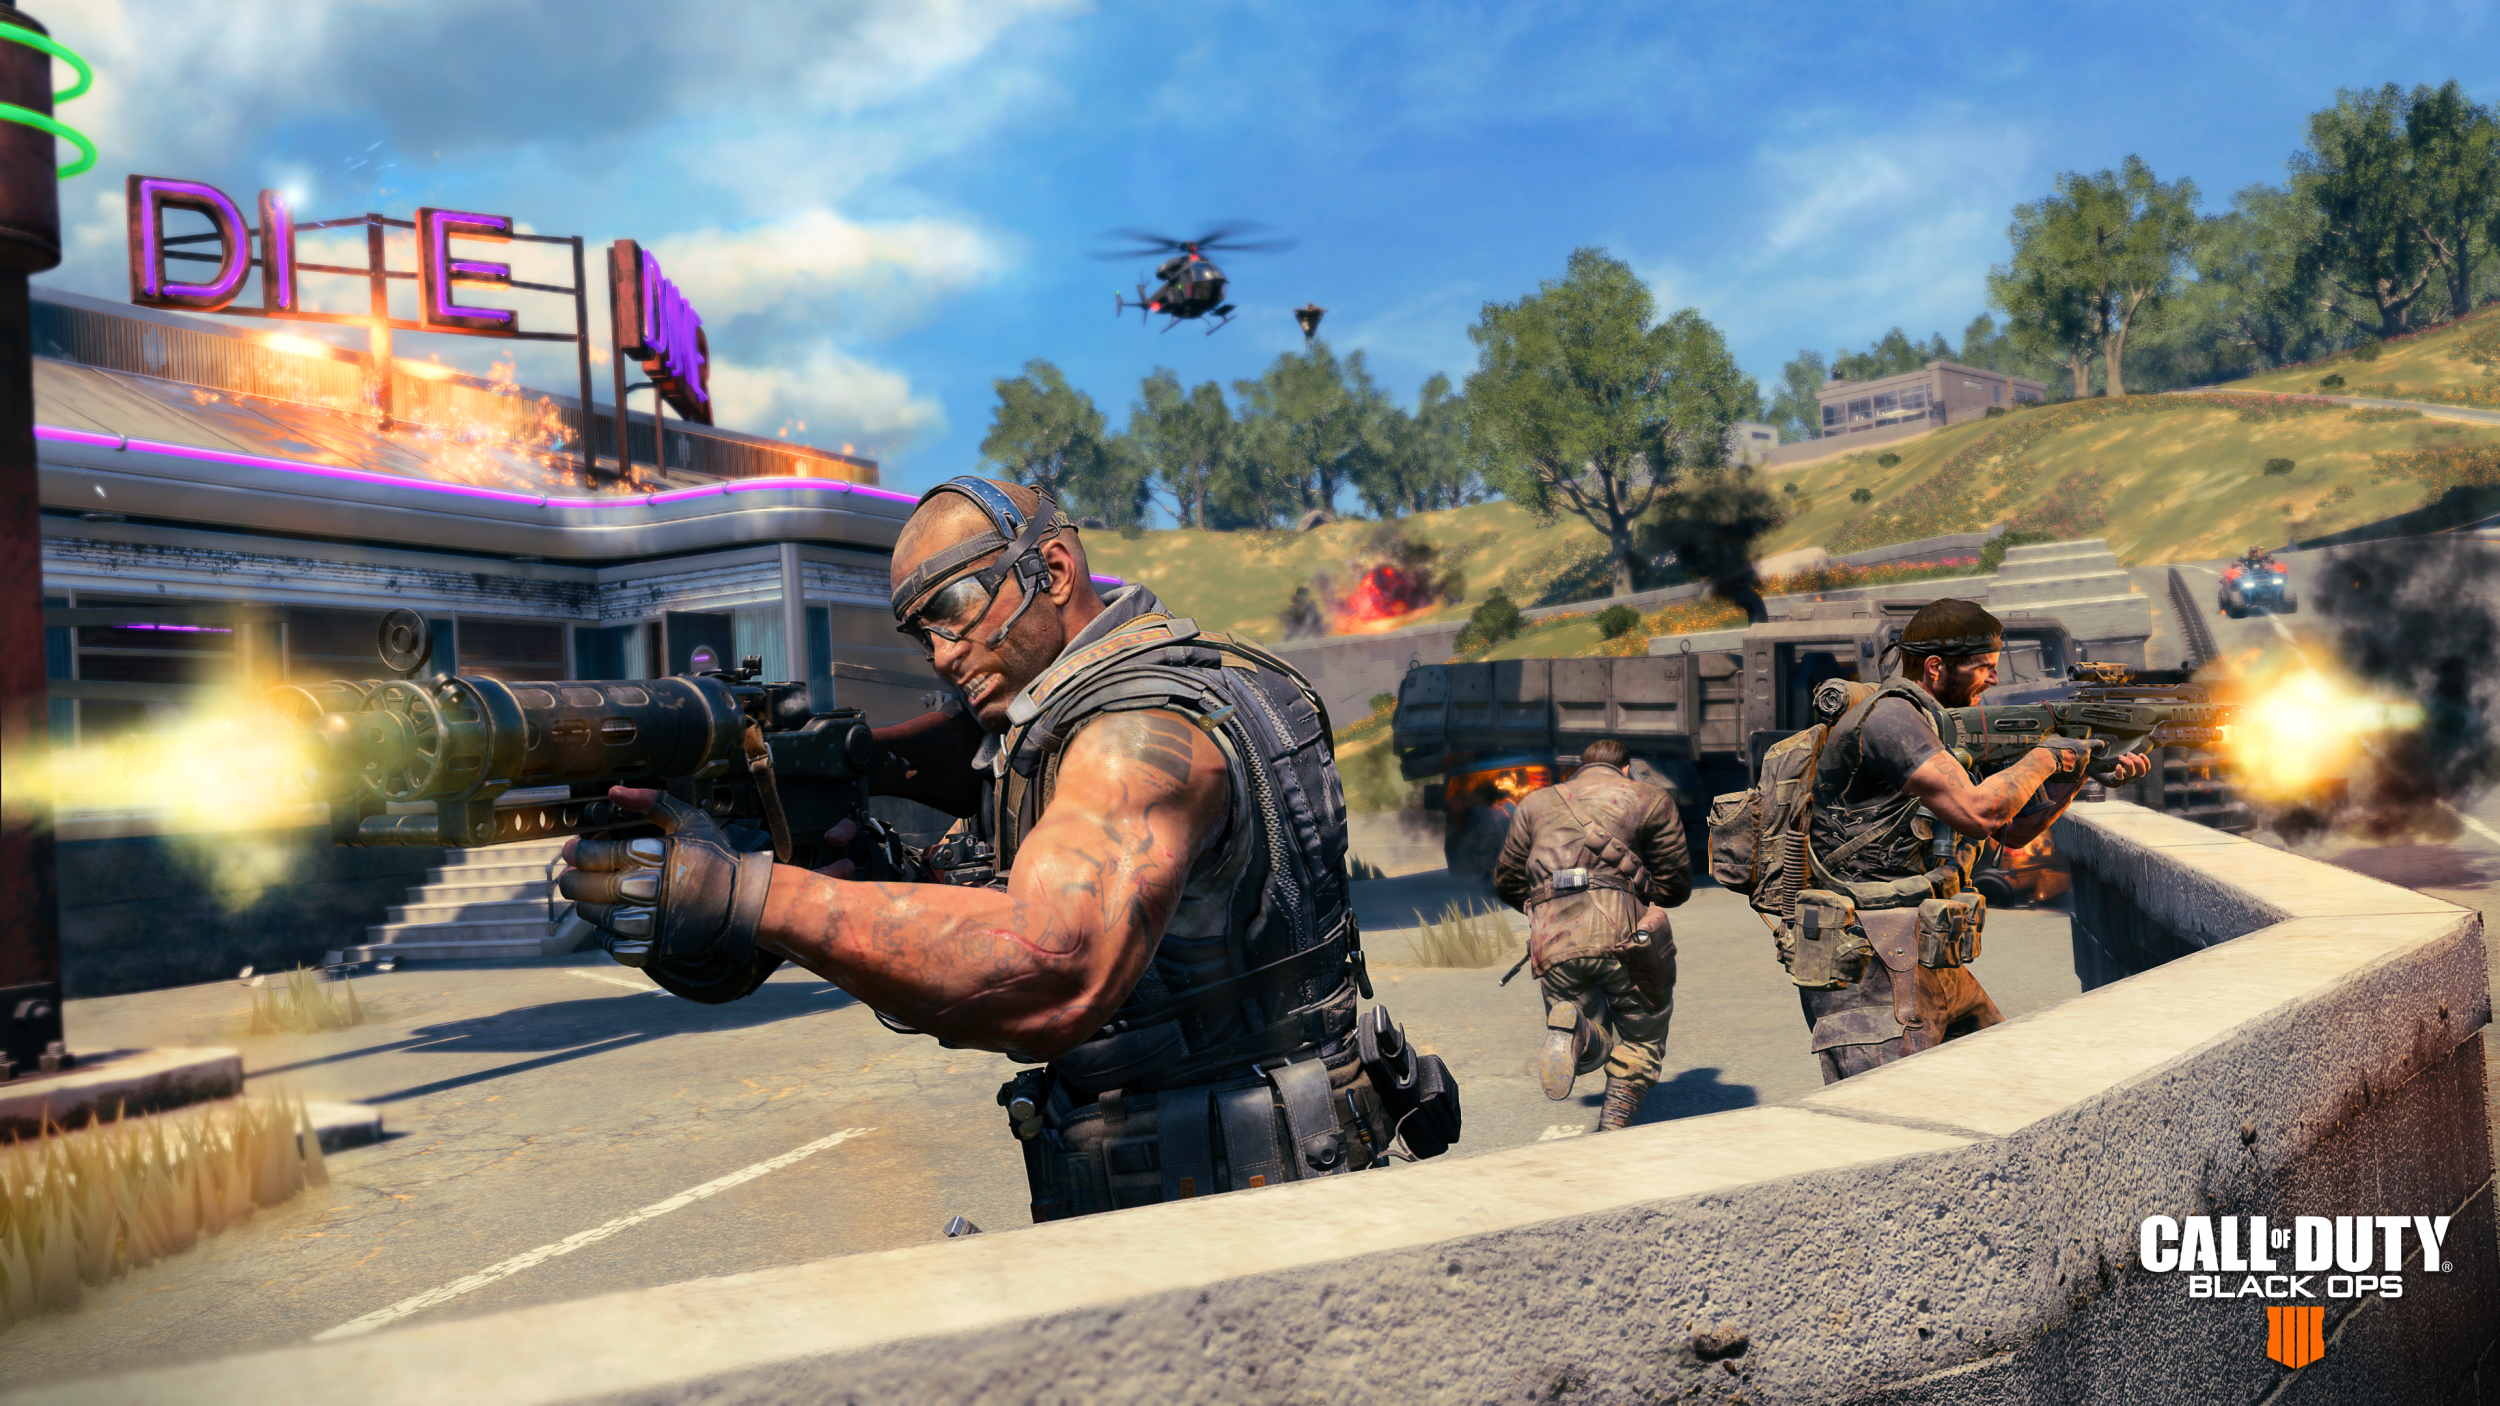 Call of Duty: Black Ops 4' Update 1 08 Adds Camos & Zombies